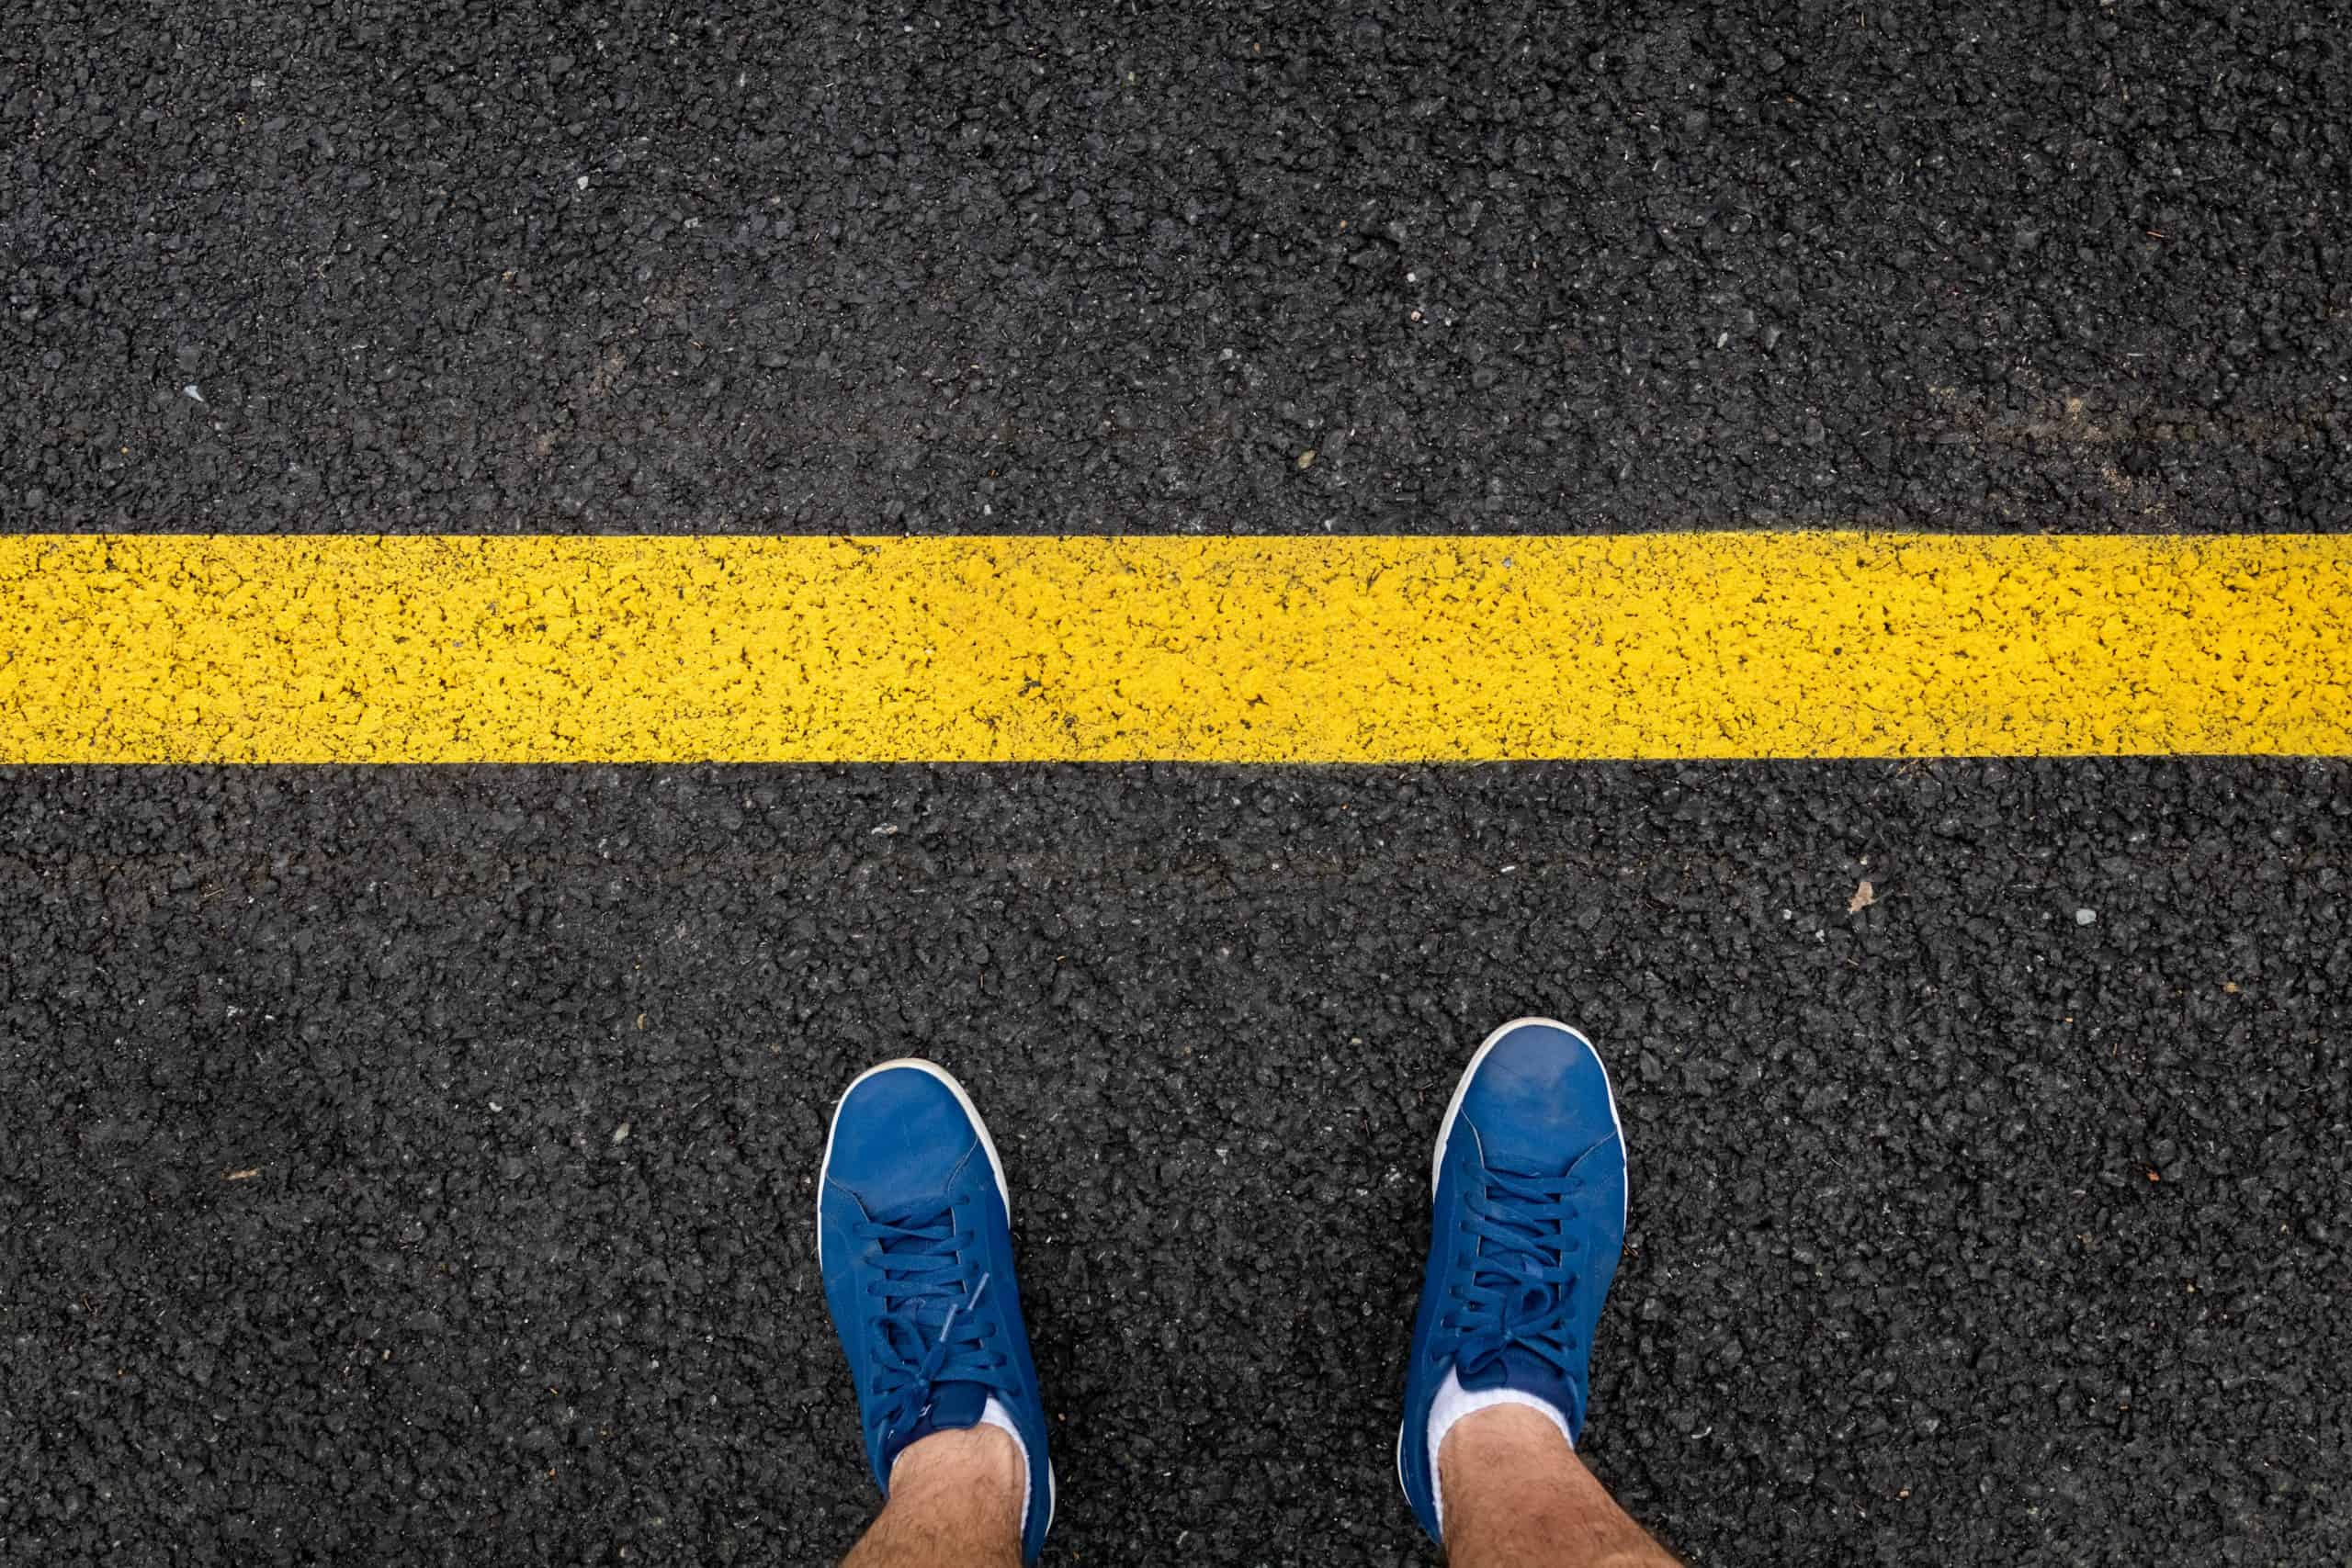 man's feet in front of a yellow line